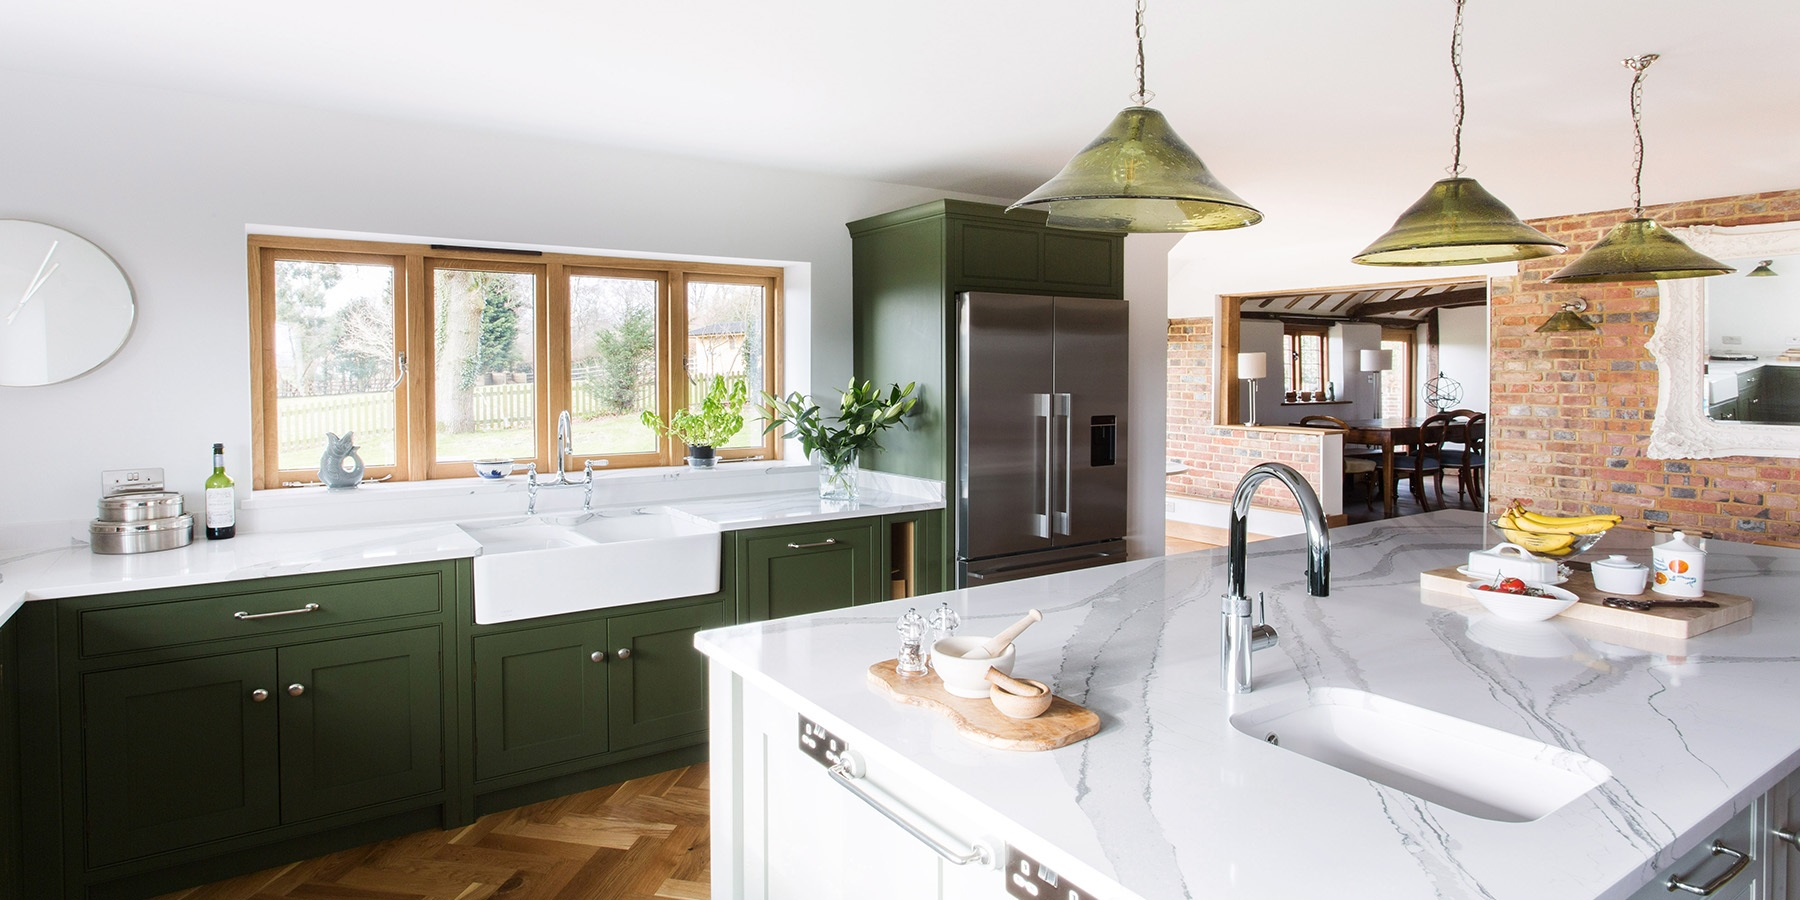 Country Style Shaker Kitchen - Burlanes bespoke Wellsdown country kitchen with large central kitchen island.